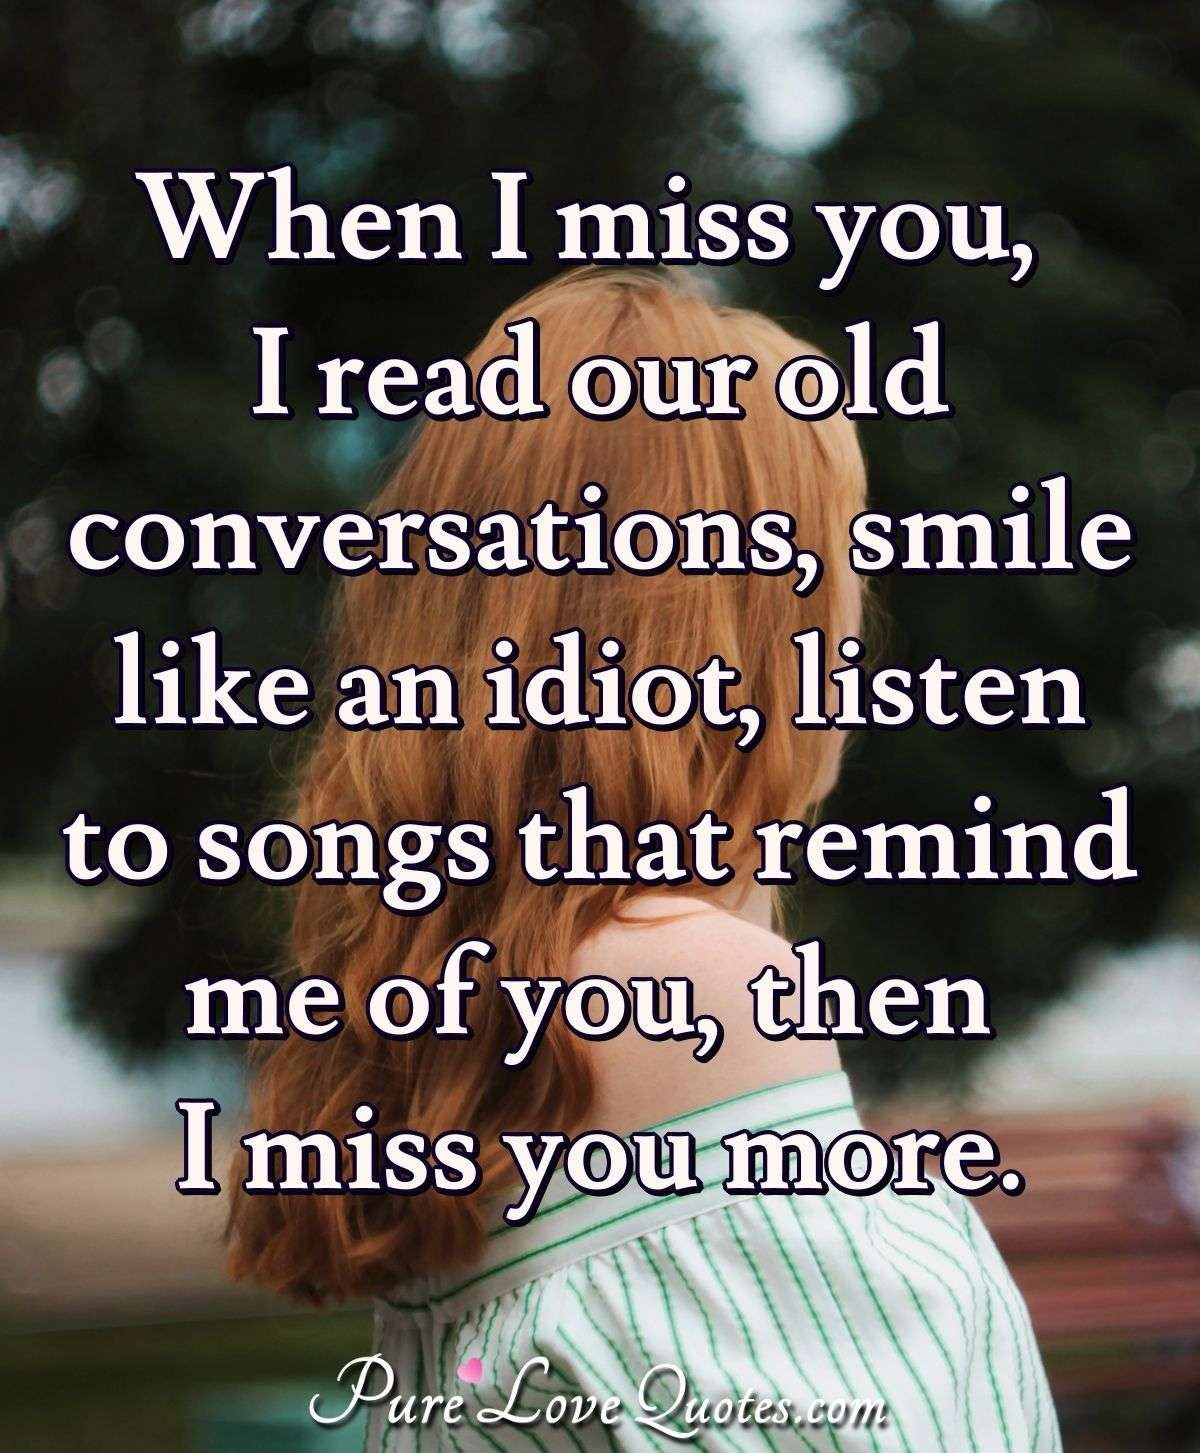 When I miss you, I read our old conversations, smile like an idiot, listen to songs that remind me of you, then I miss you more. - Anonymous